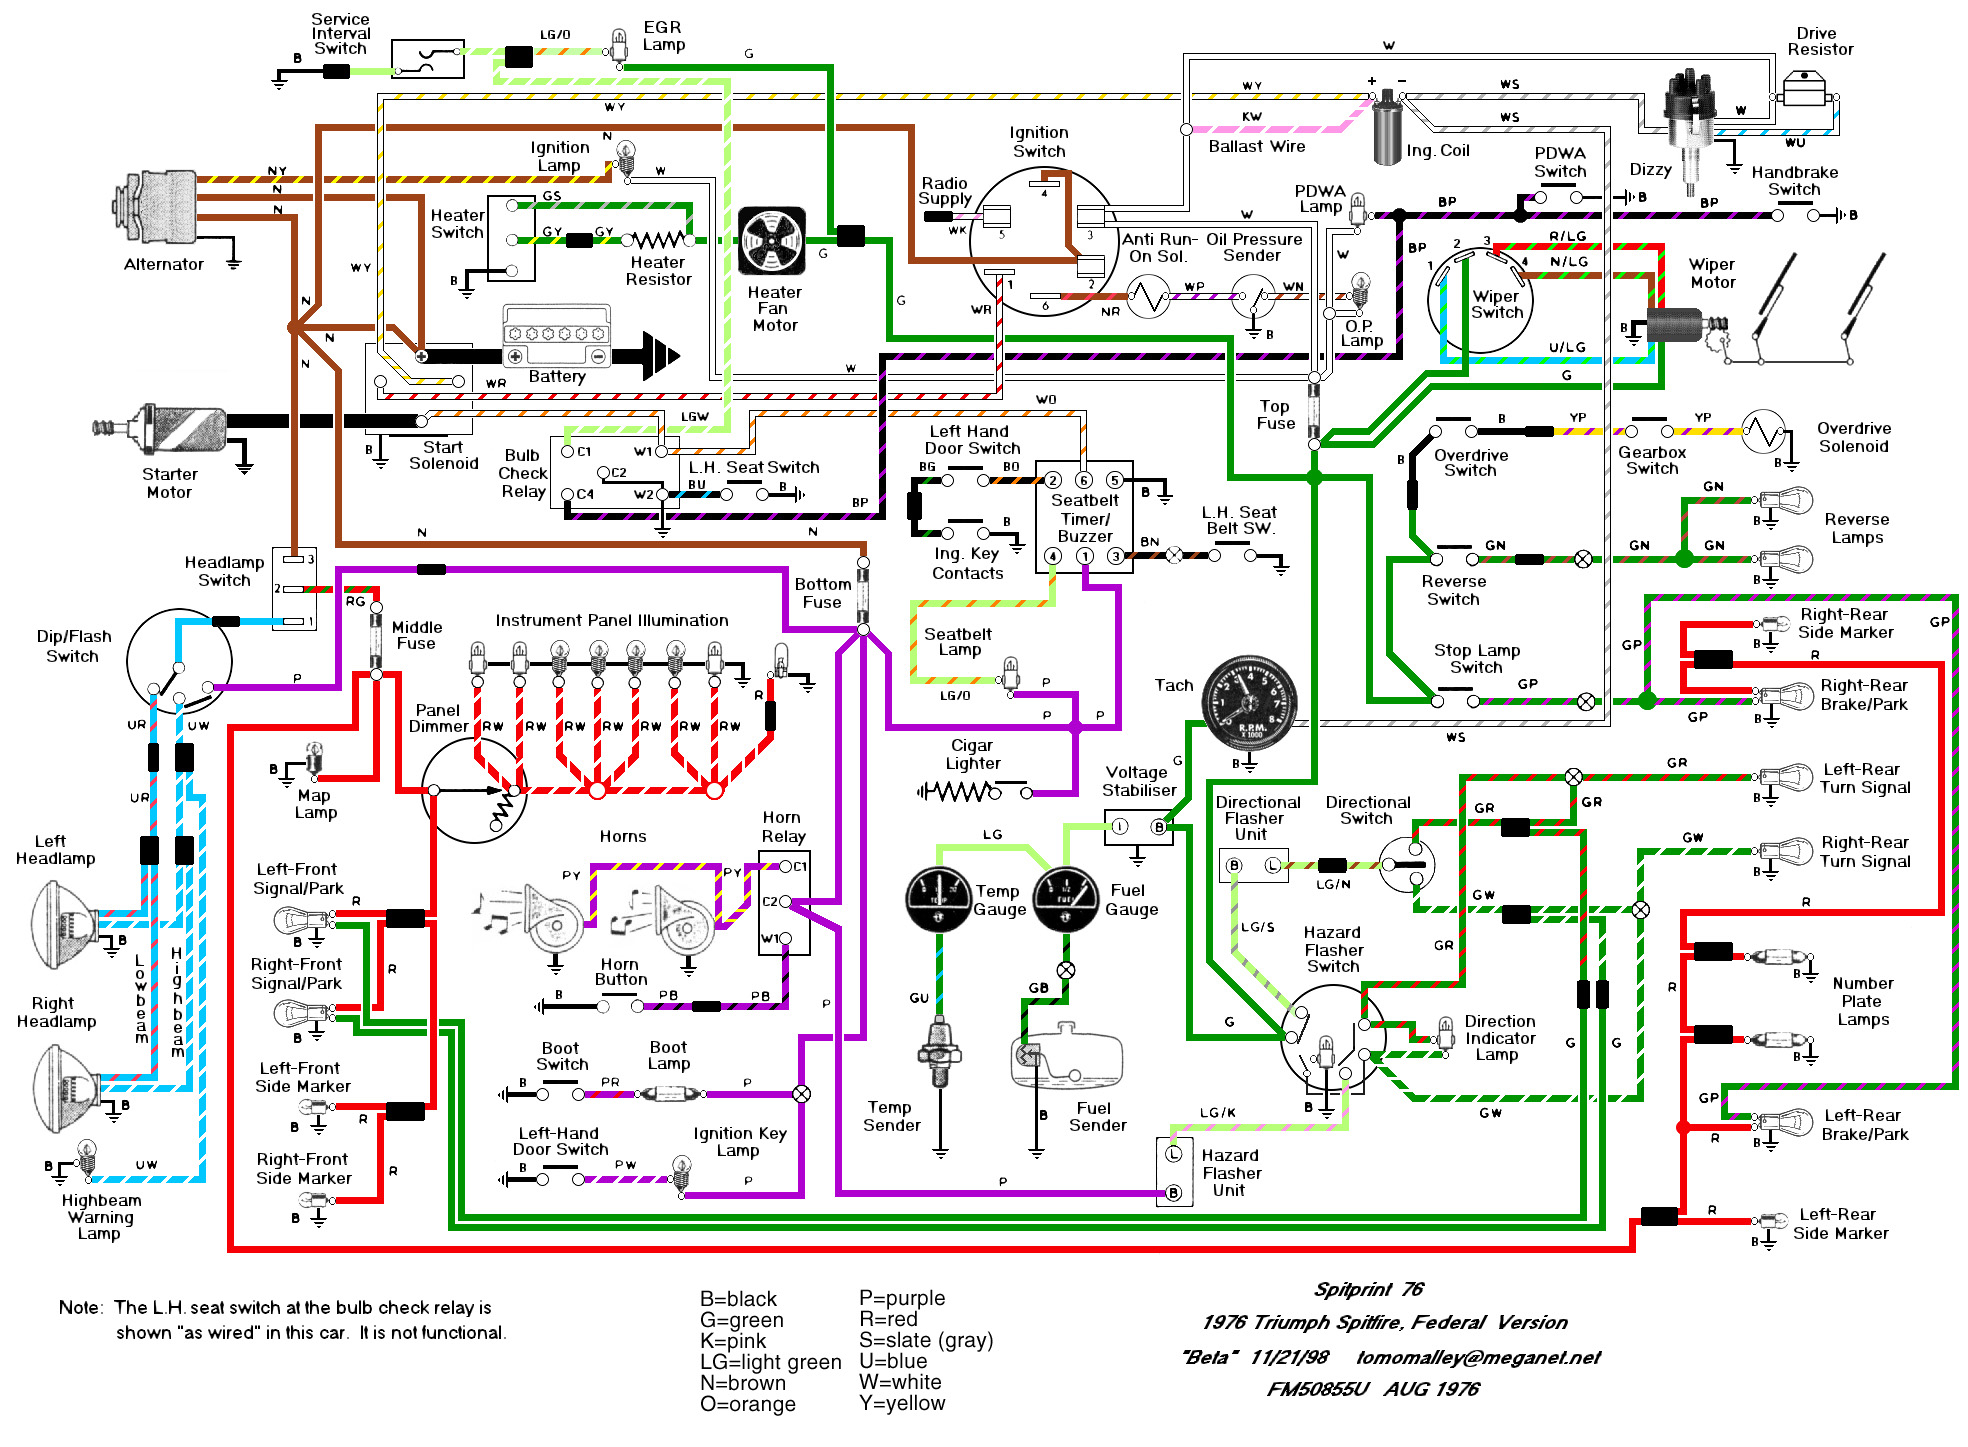 toyota mr2 wiring diagram free download schematic vintage boat wiring diagram free download schematic ignition coils and proper system voltage??? : spitfire ...